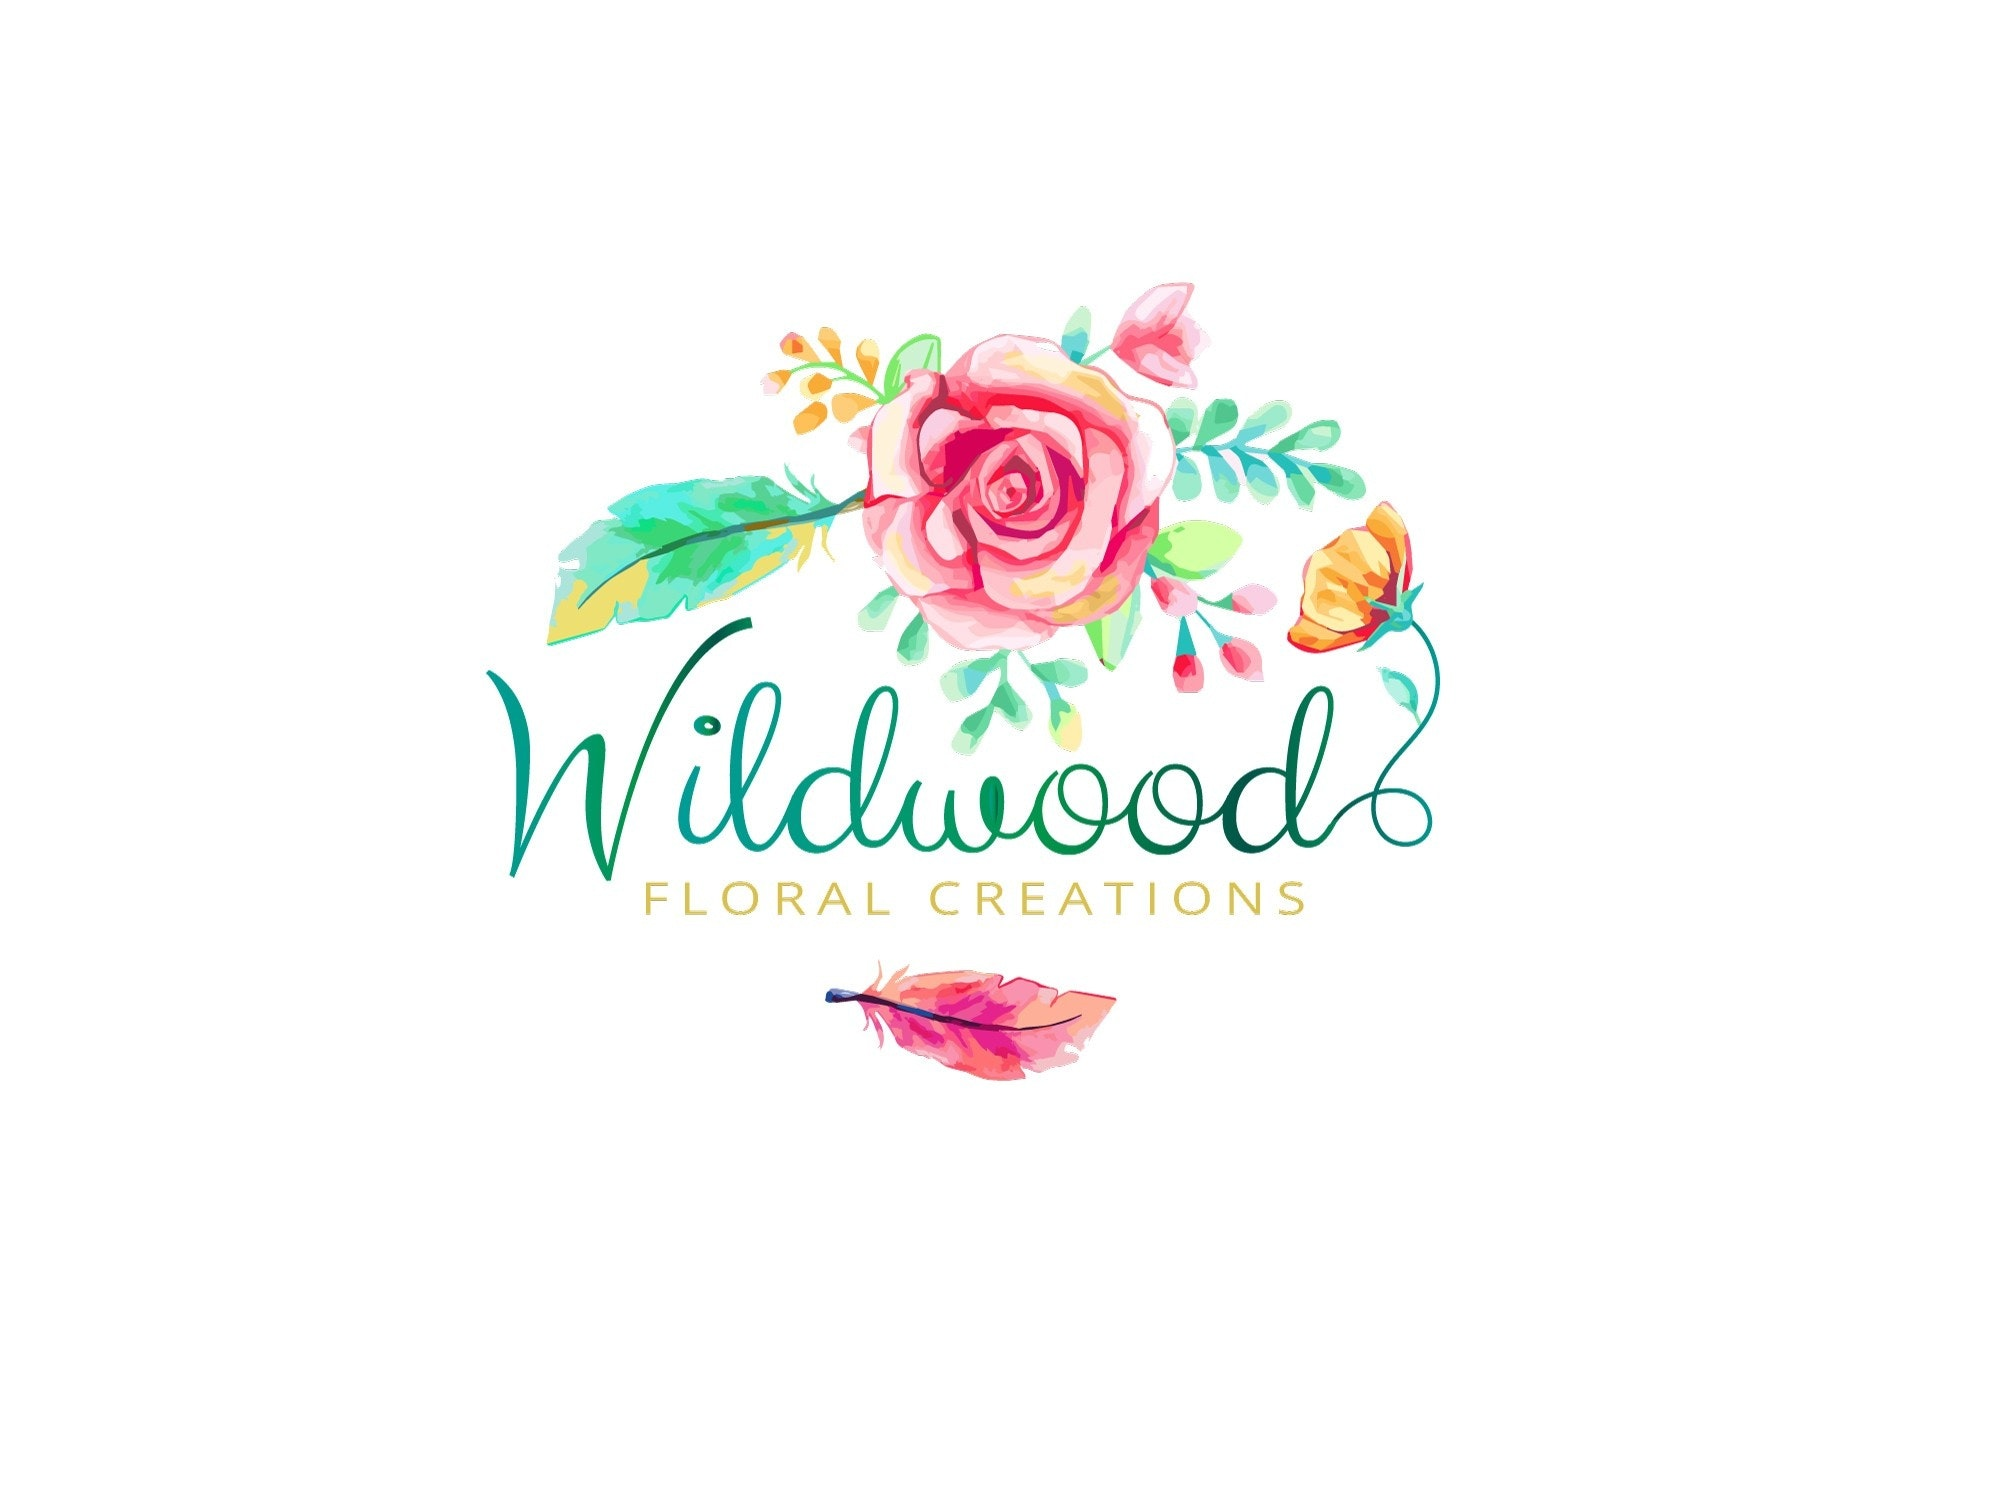 Wildwood Floral Creations logo